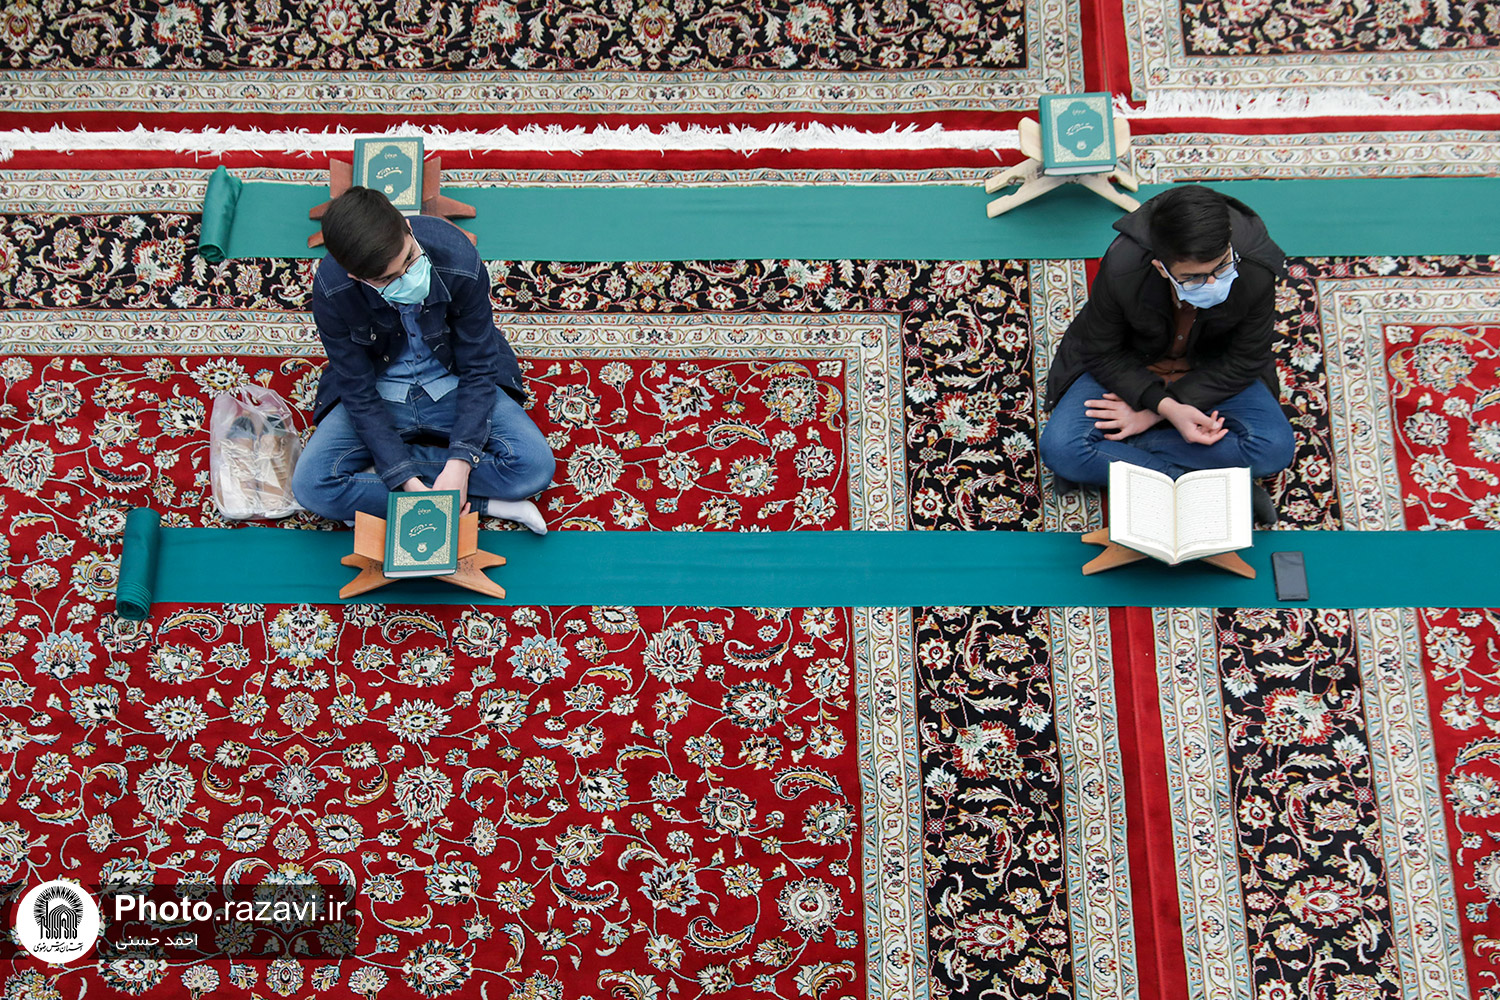 Chair of memorizing Quran in the Dar al-Quran of the holy shrine of Imam Reza (AS)